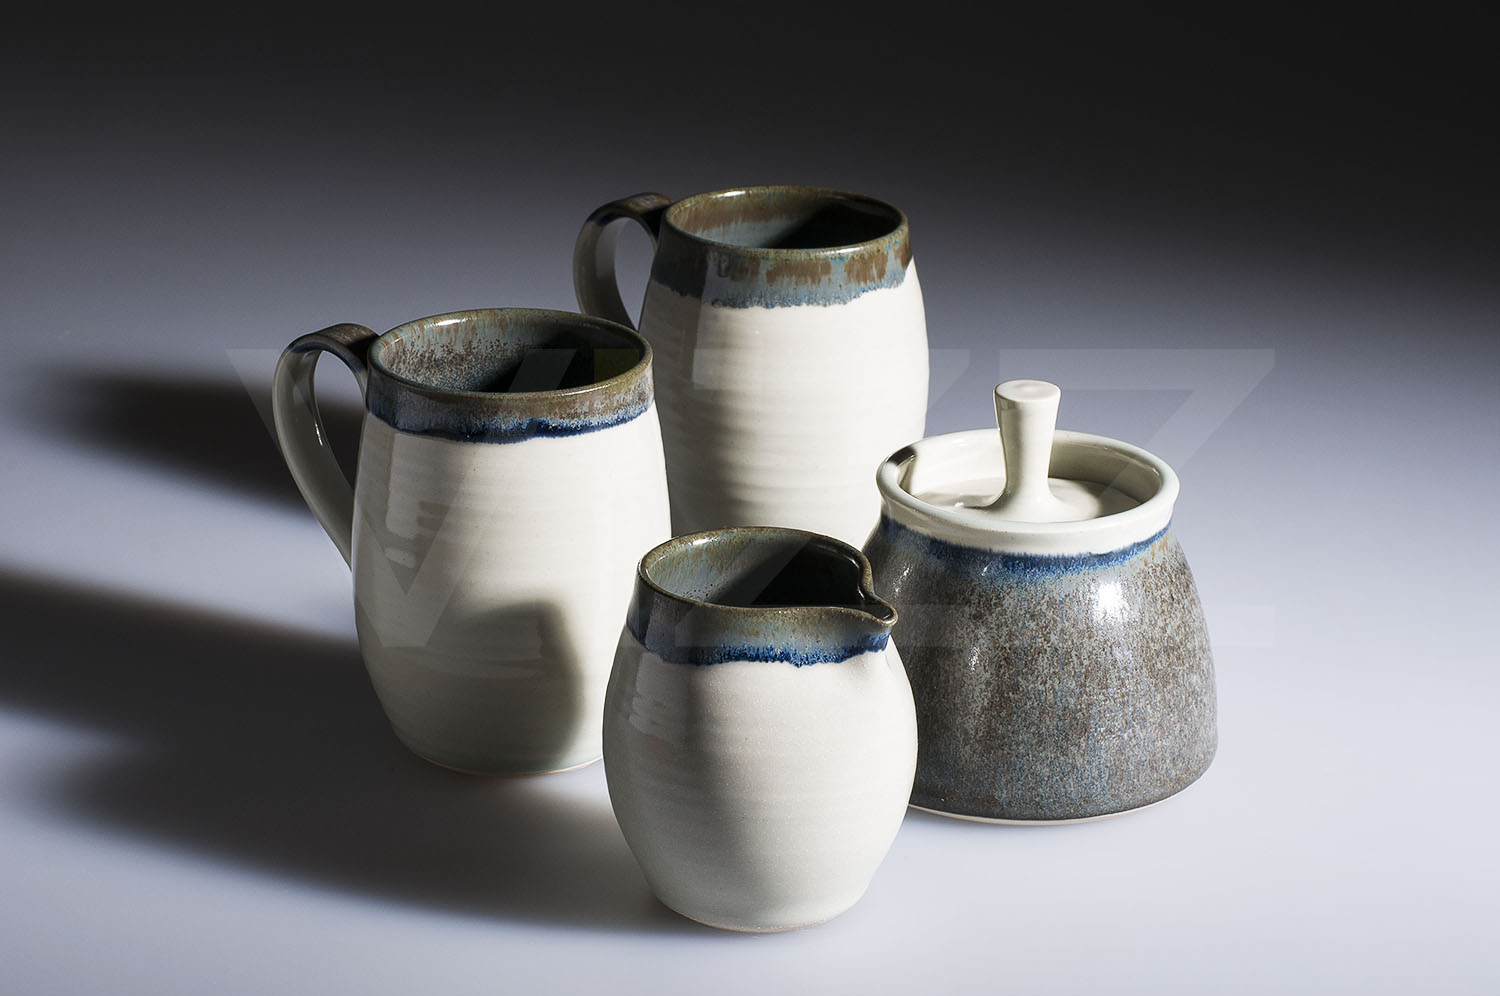 Tea set by Alison Hanvey -  completing the set we photographed a while ago.